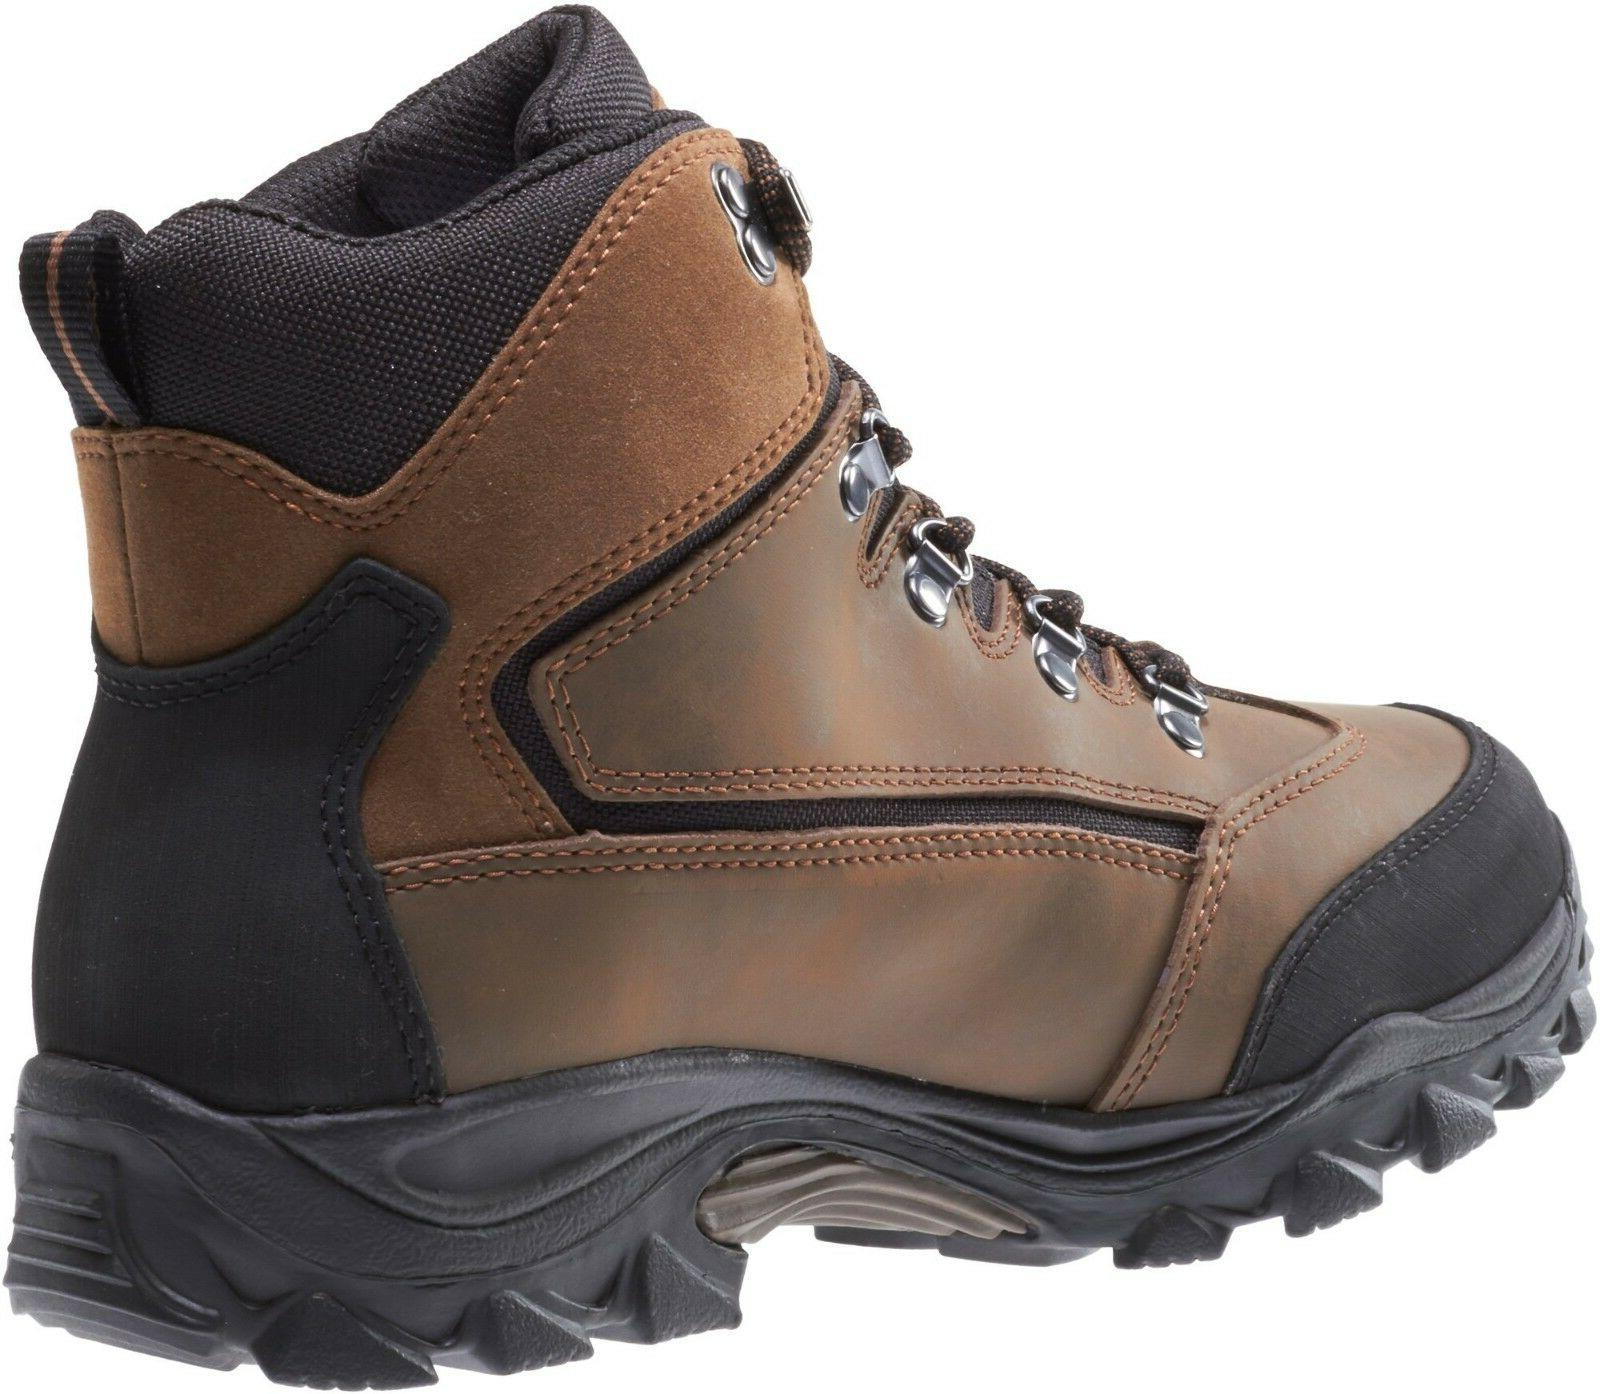 "6"" Waterproof Hiker Boot Shoes Hiking Work wv"